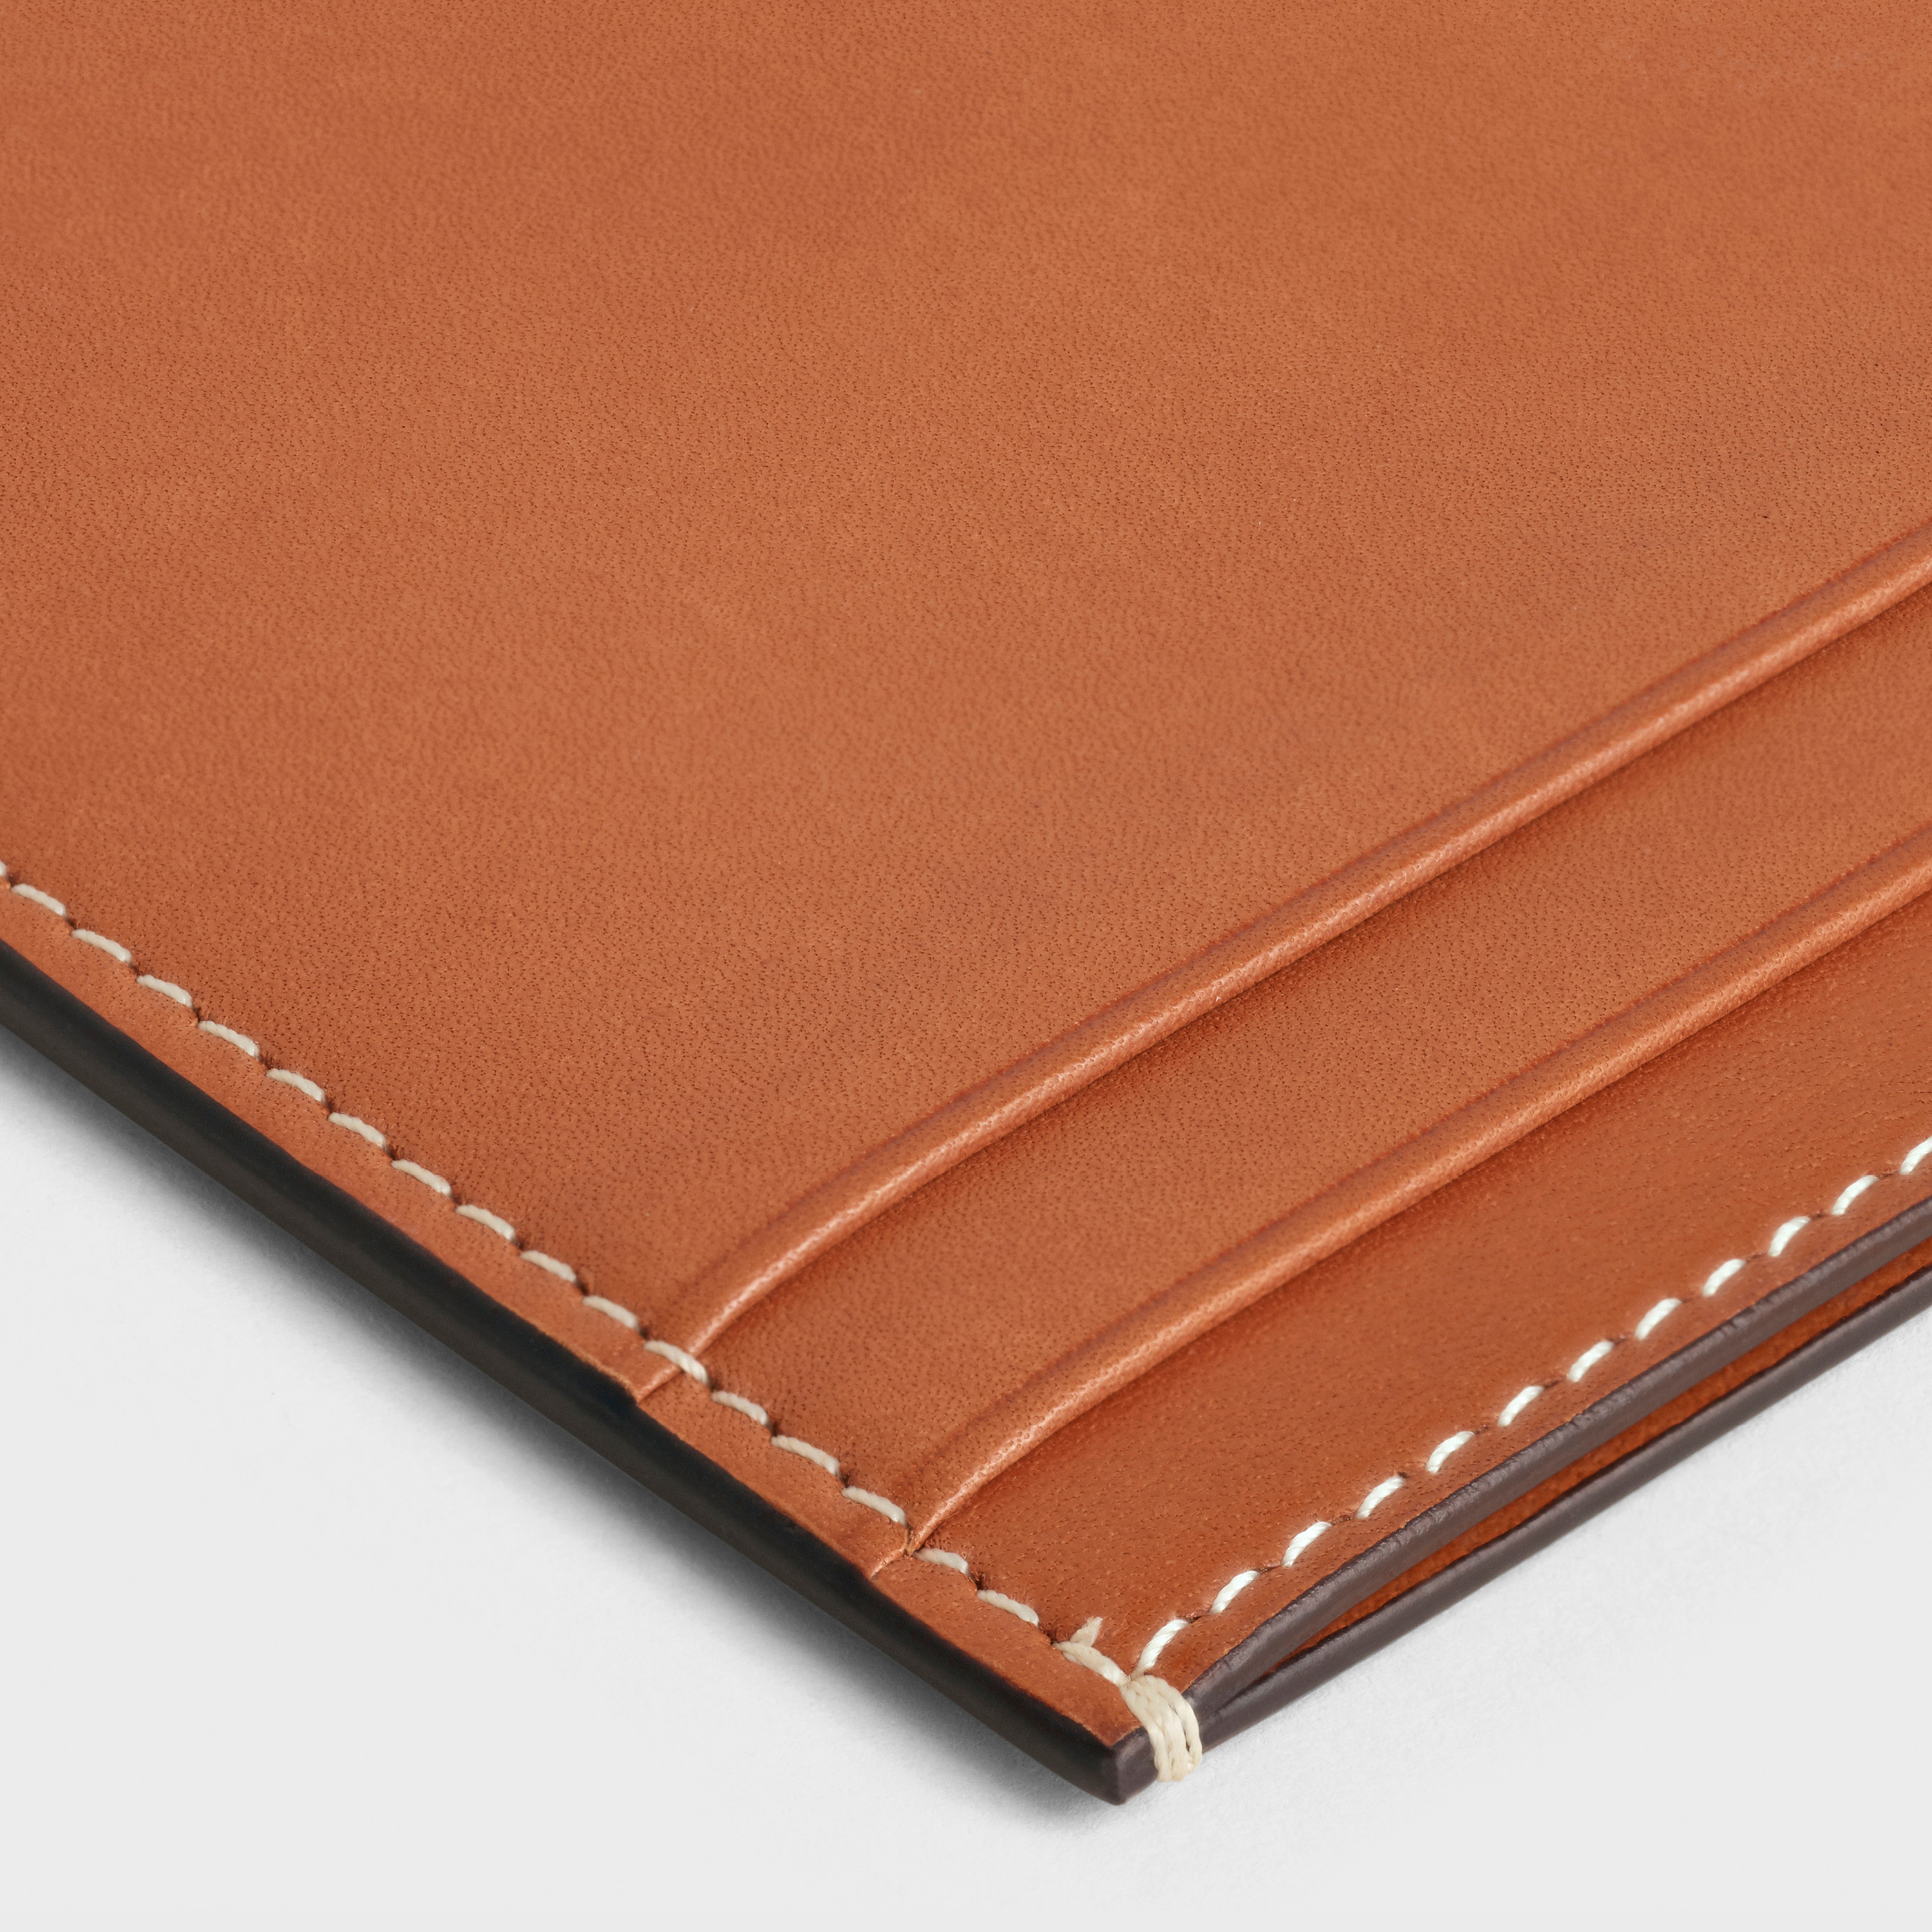 Multifunction card holder in natural calfskin | CELINE